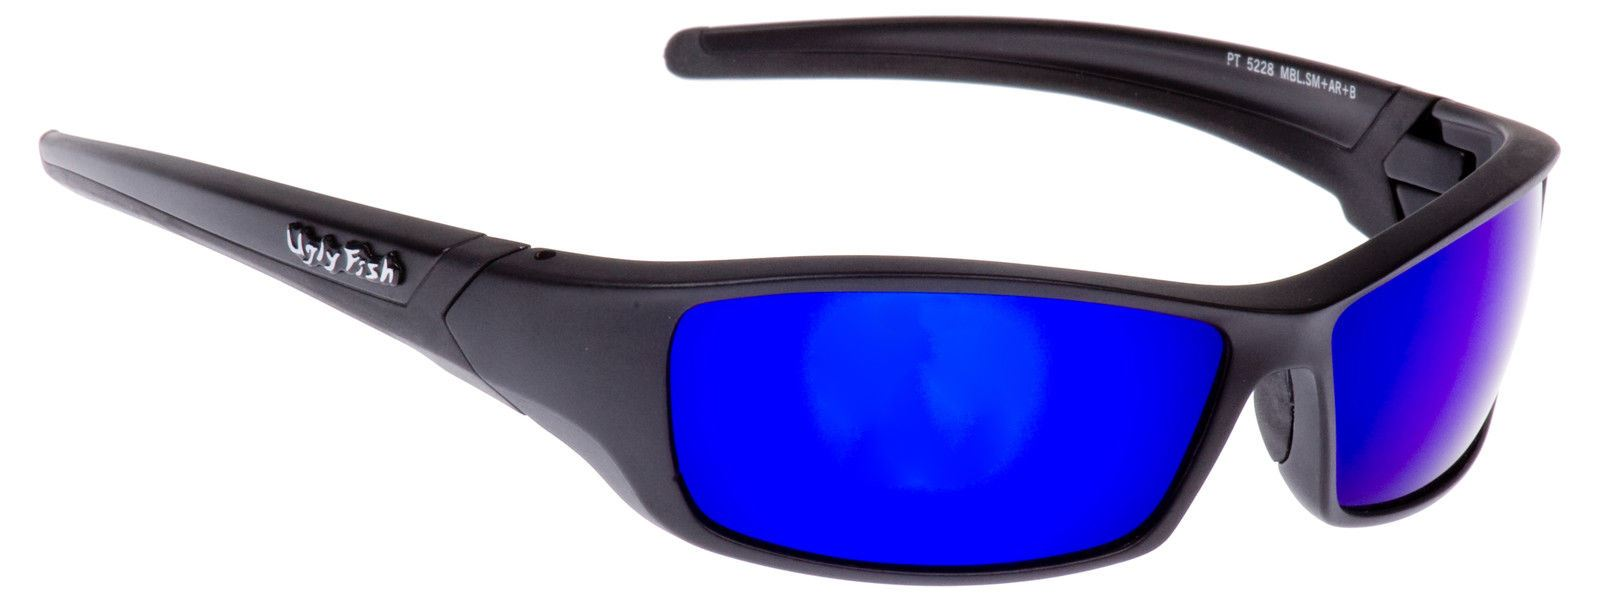 d83de8aa02 Ugly Fish Sunglasses Matt Black With Blue Lens Sports Shades Eyewear RS5228